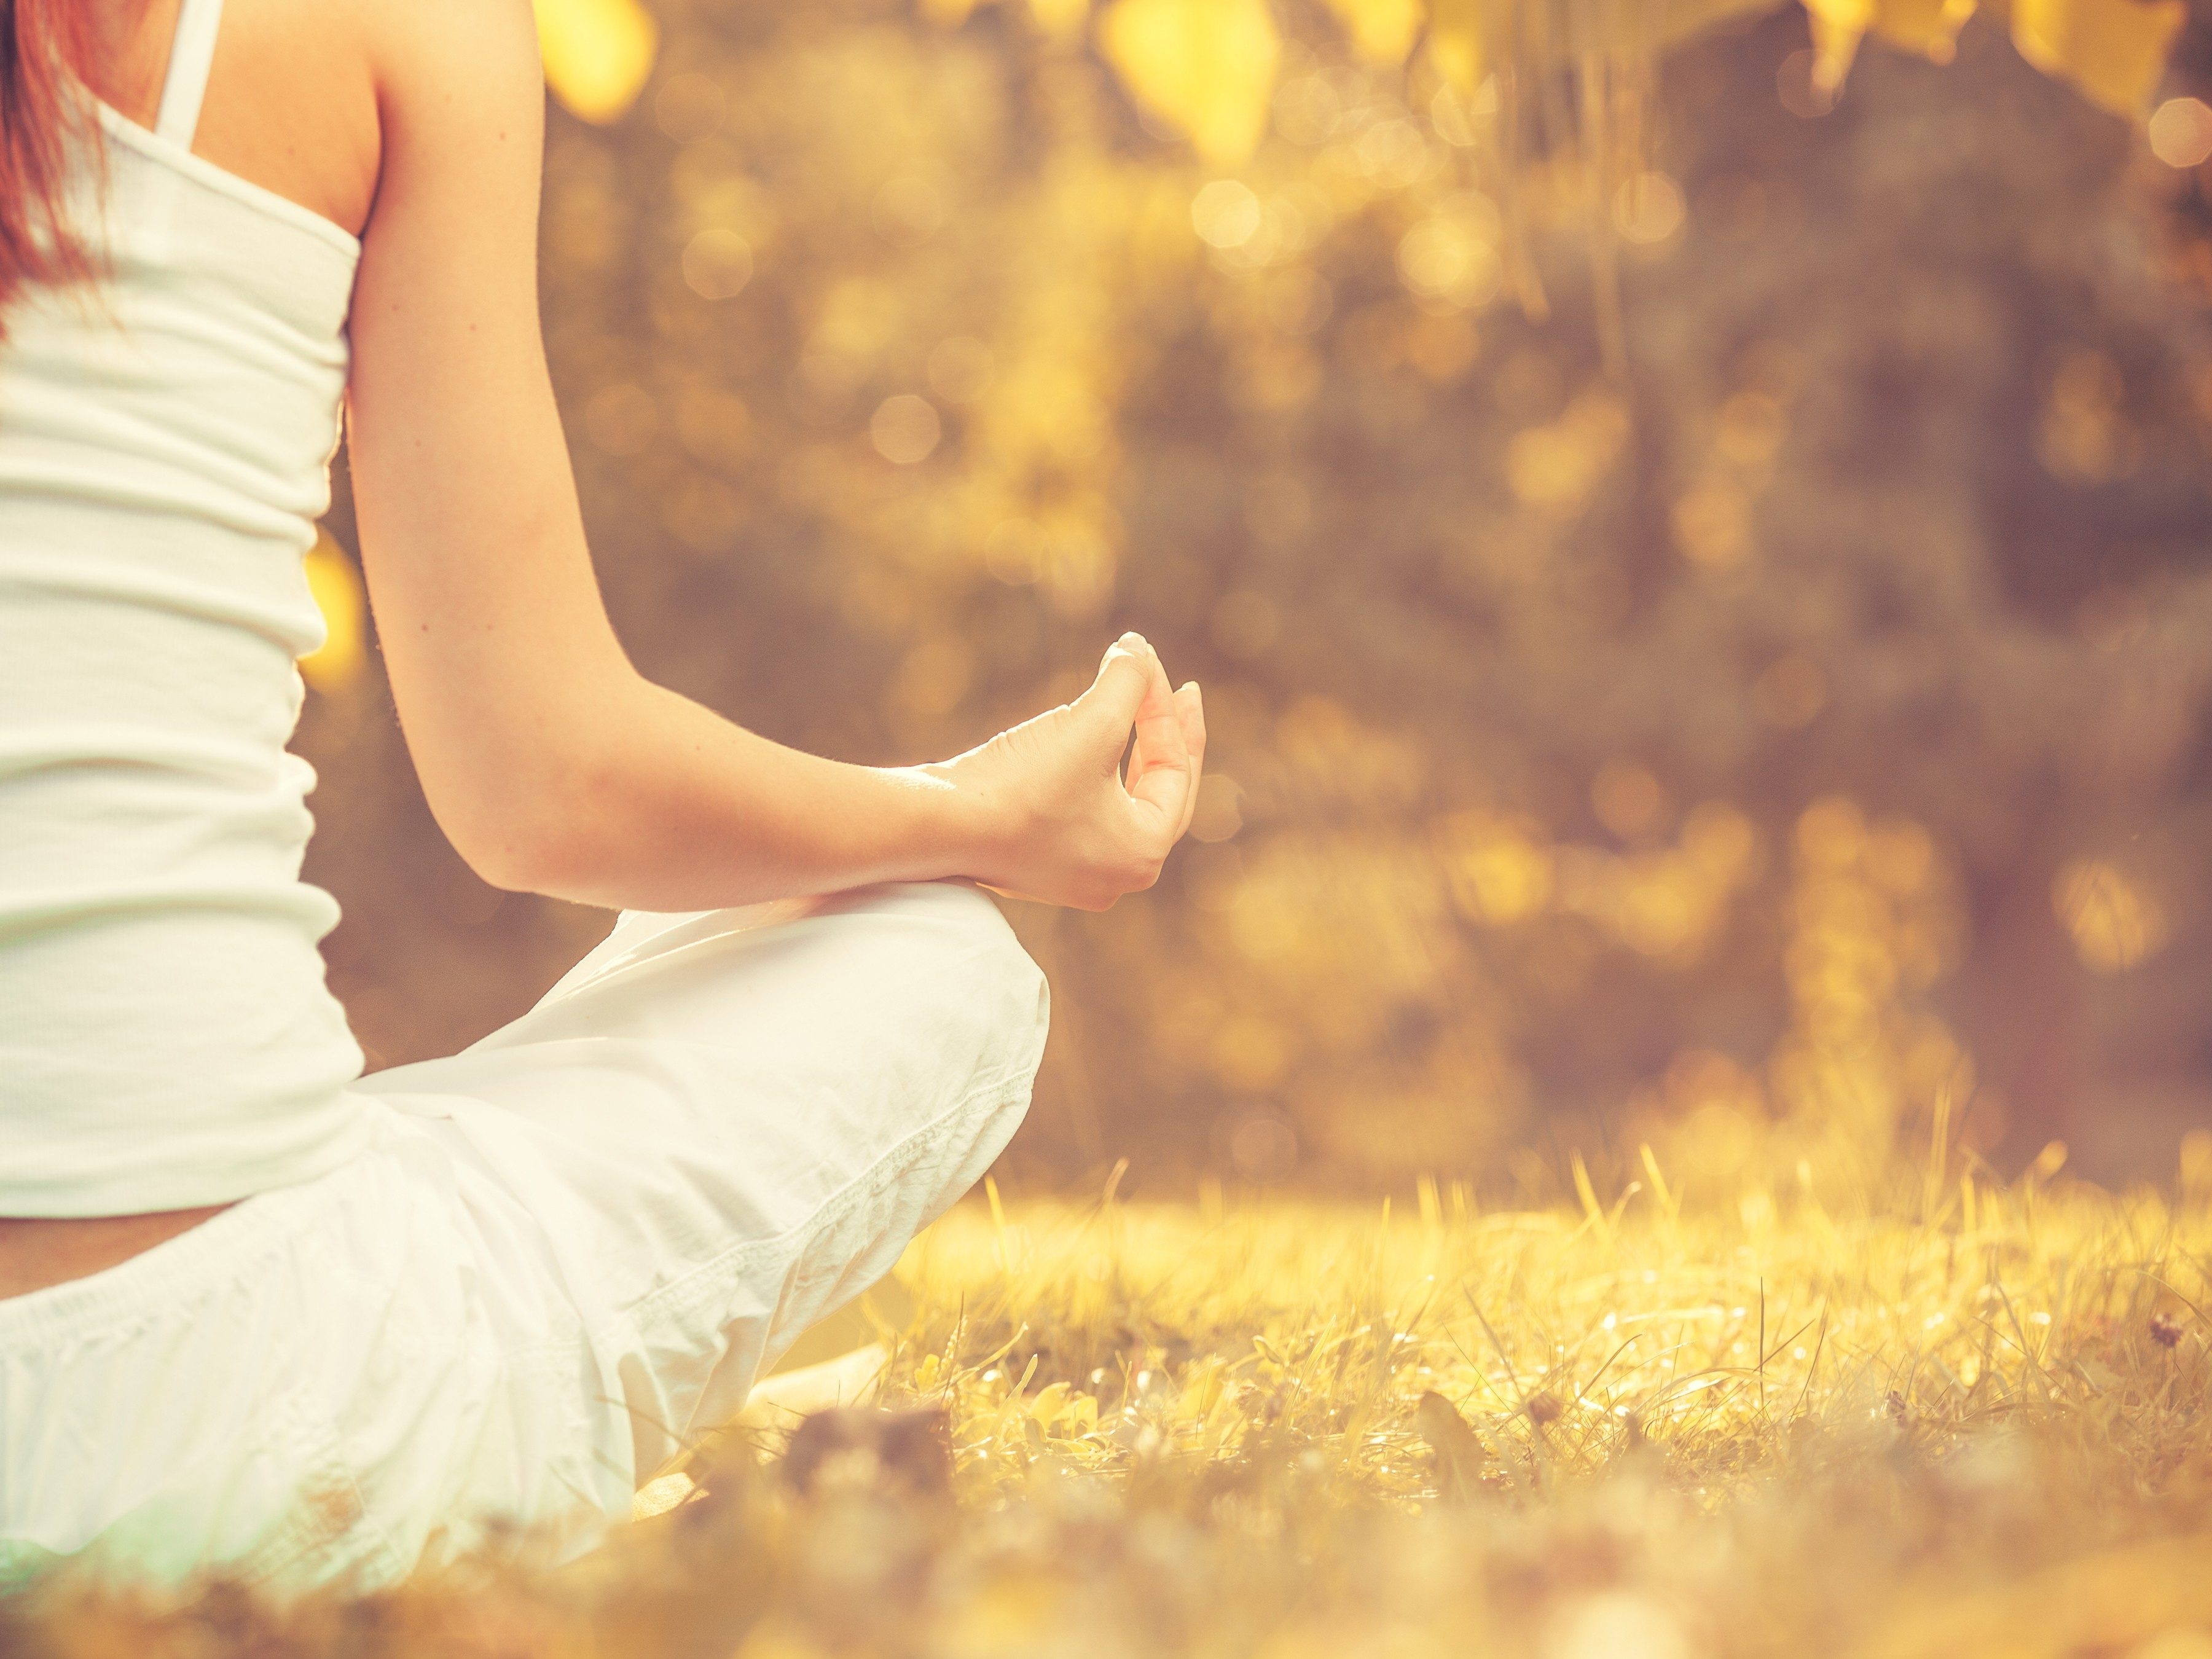 3. Boost energy by banishing stress.